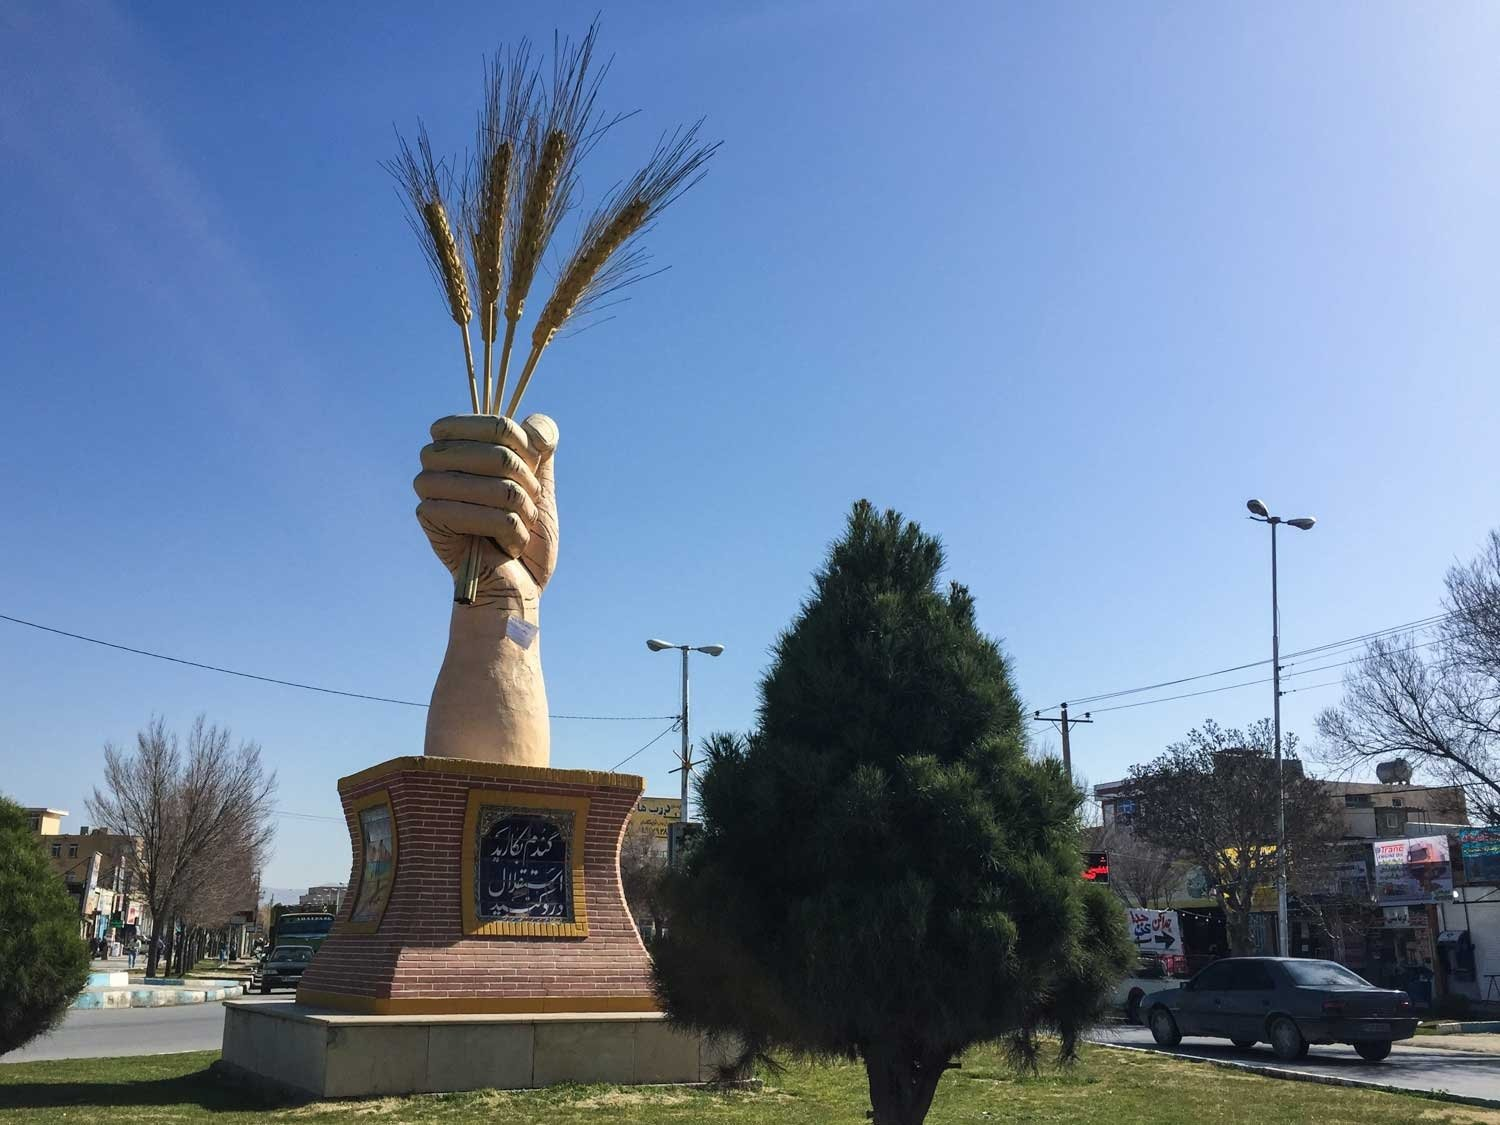 Guided Iran tour - Iran is the world's 12th biggest producer of wheat